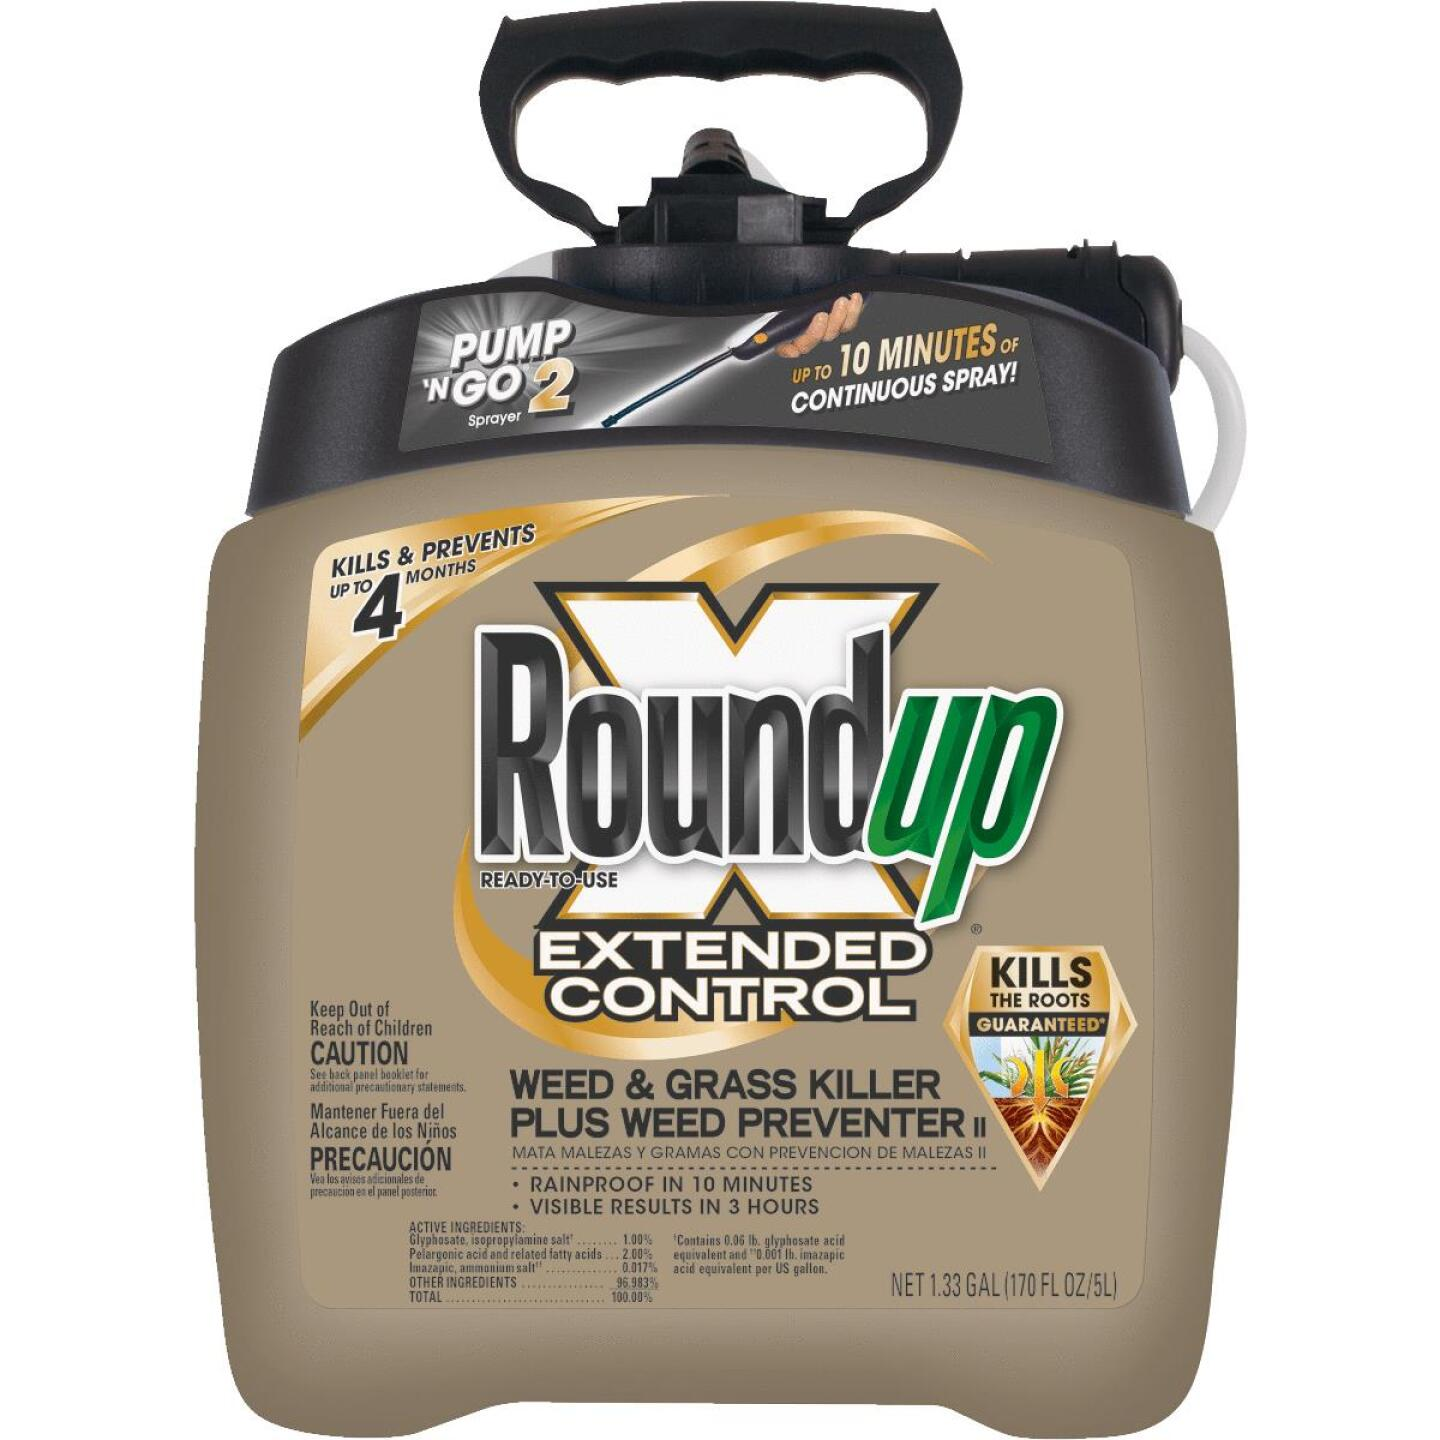 Roundup Extended Control 1.33 Gal. Ready To Use Wand Sprayer Weed & Grass Killer Plus Weed Preventer II Image 1